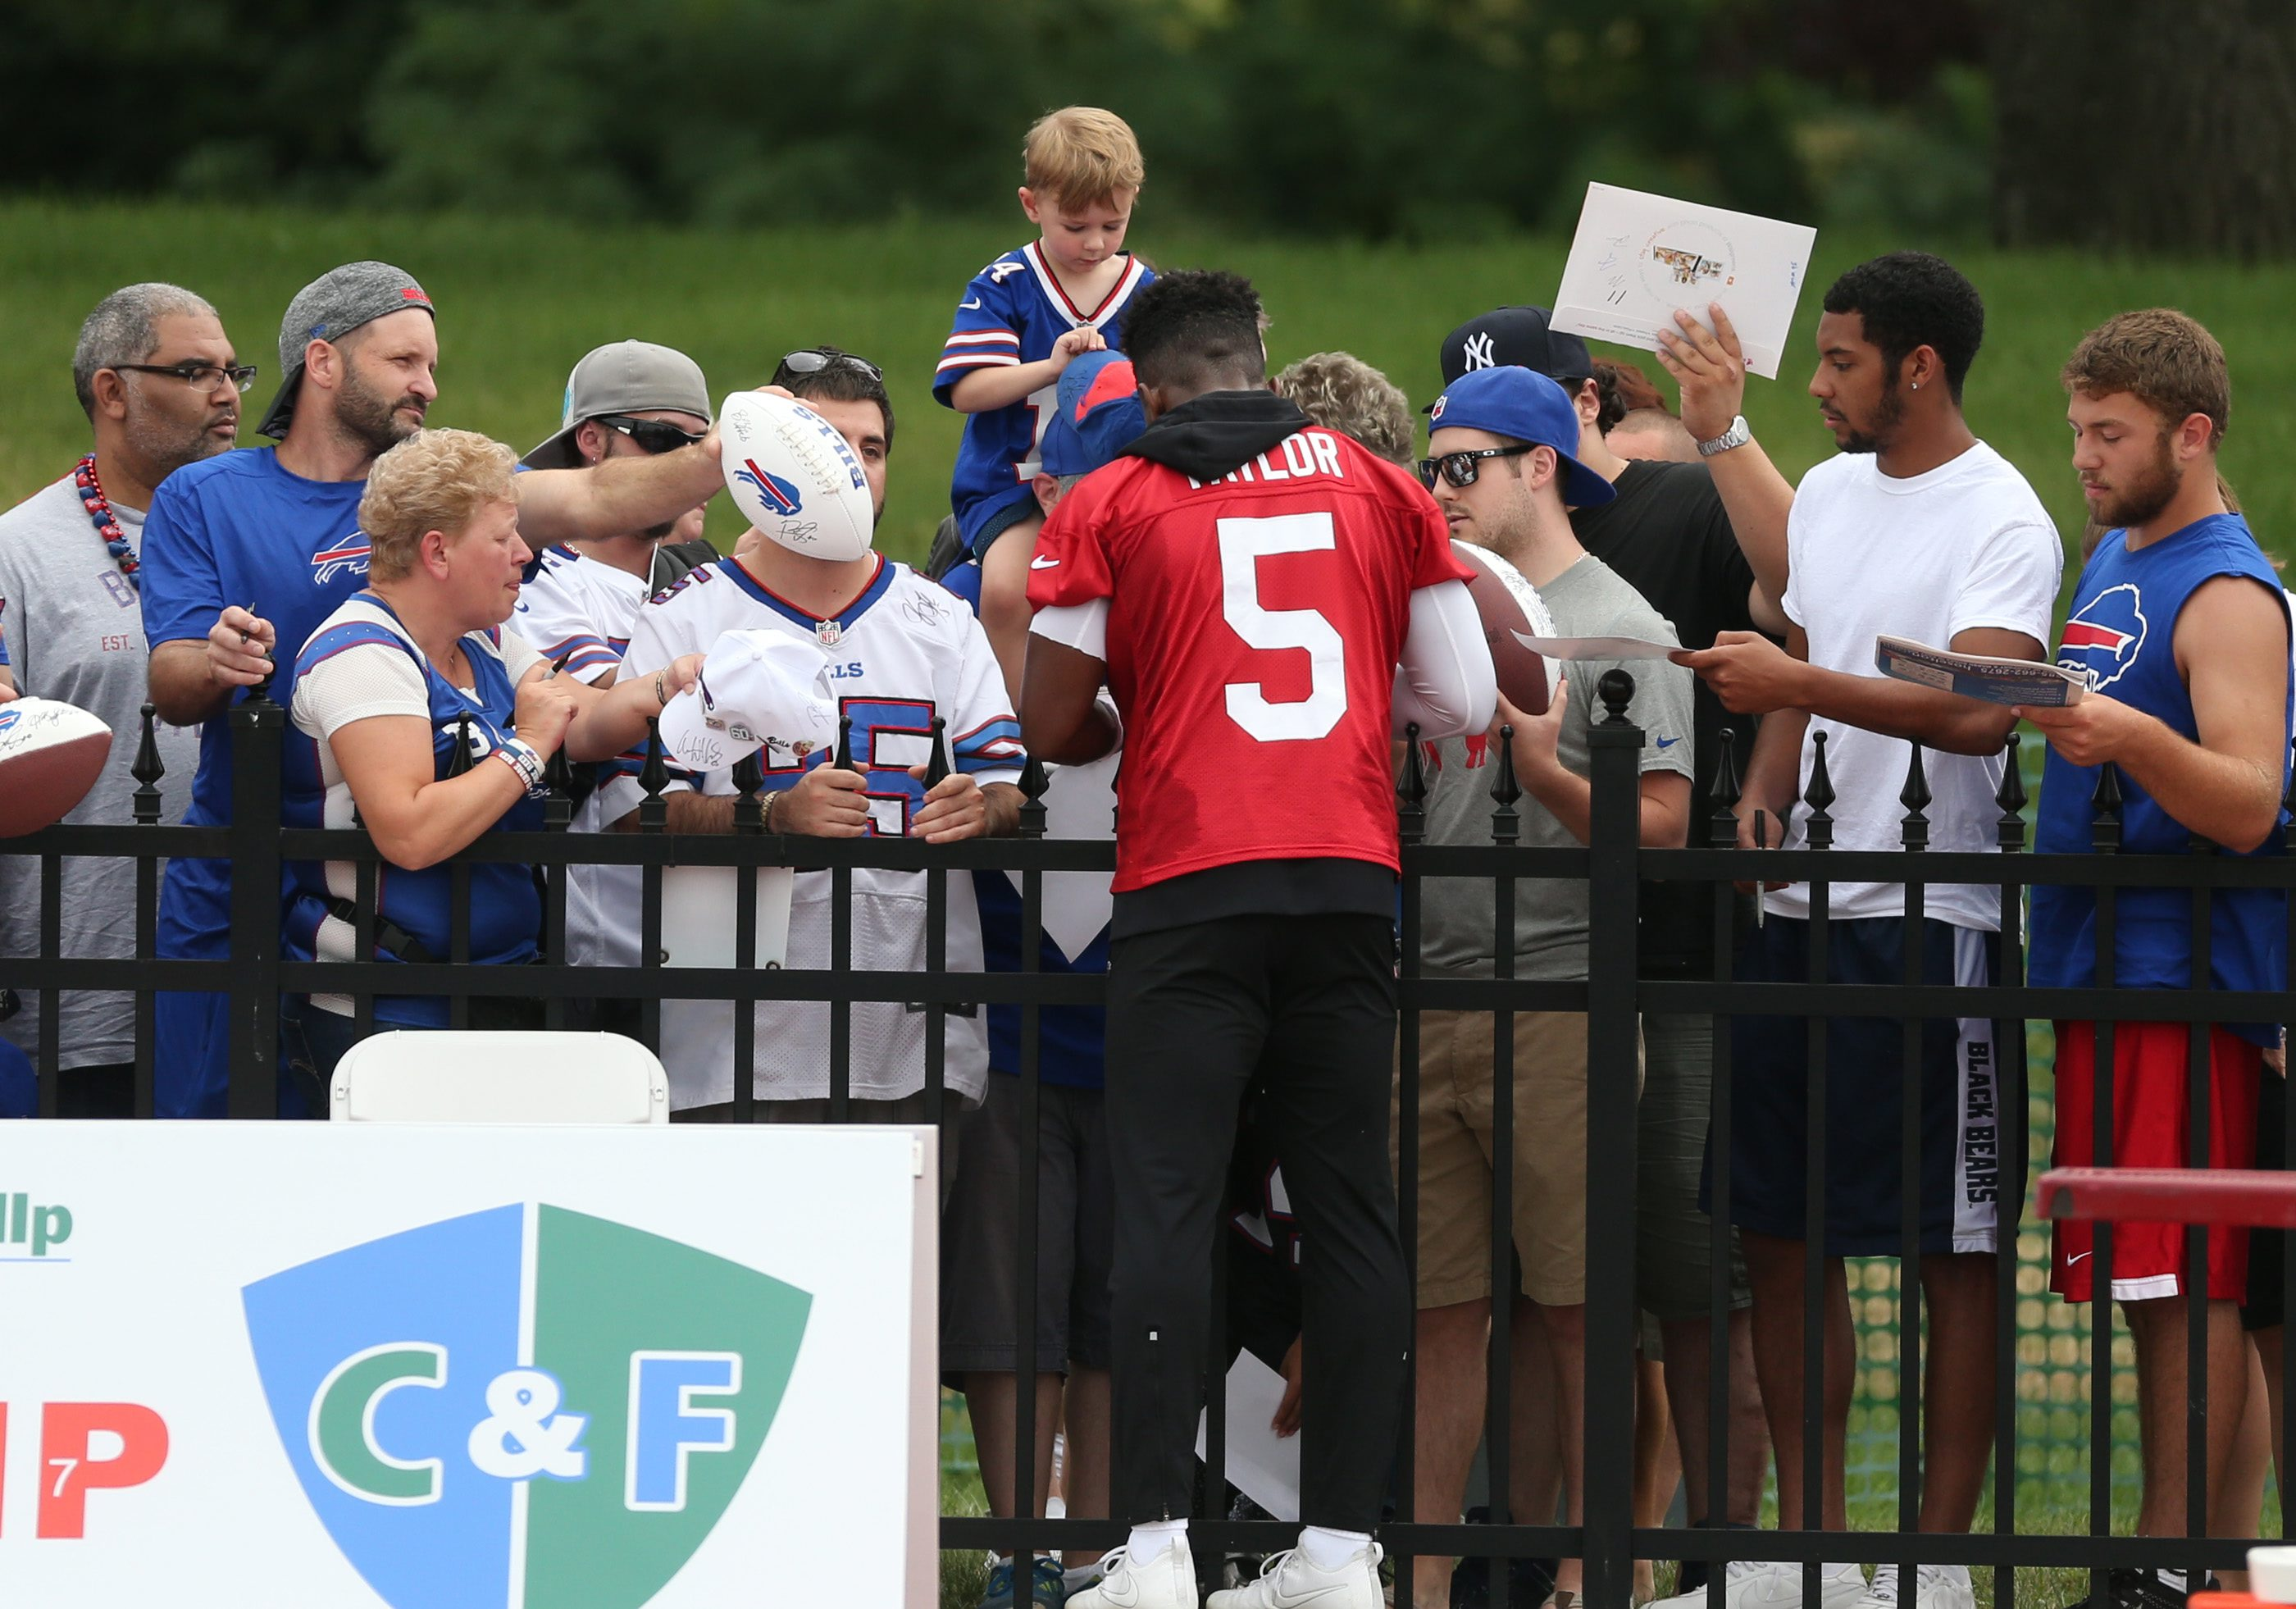 Buffalo Bills quarterback Tyrod Taylor (5) signs autographs after Saturday's first day of the 2016 training camp at St. John Fisher College in Pittsford. (James P. McCoy/ Buffalo News)